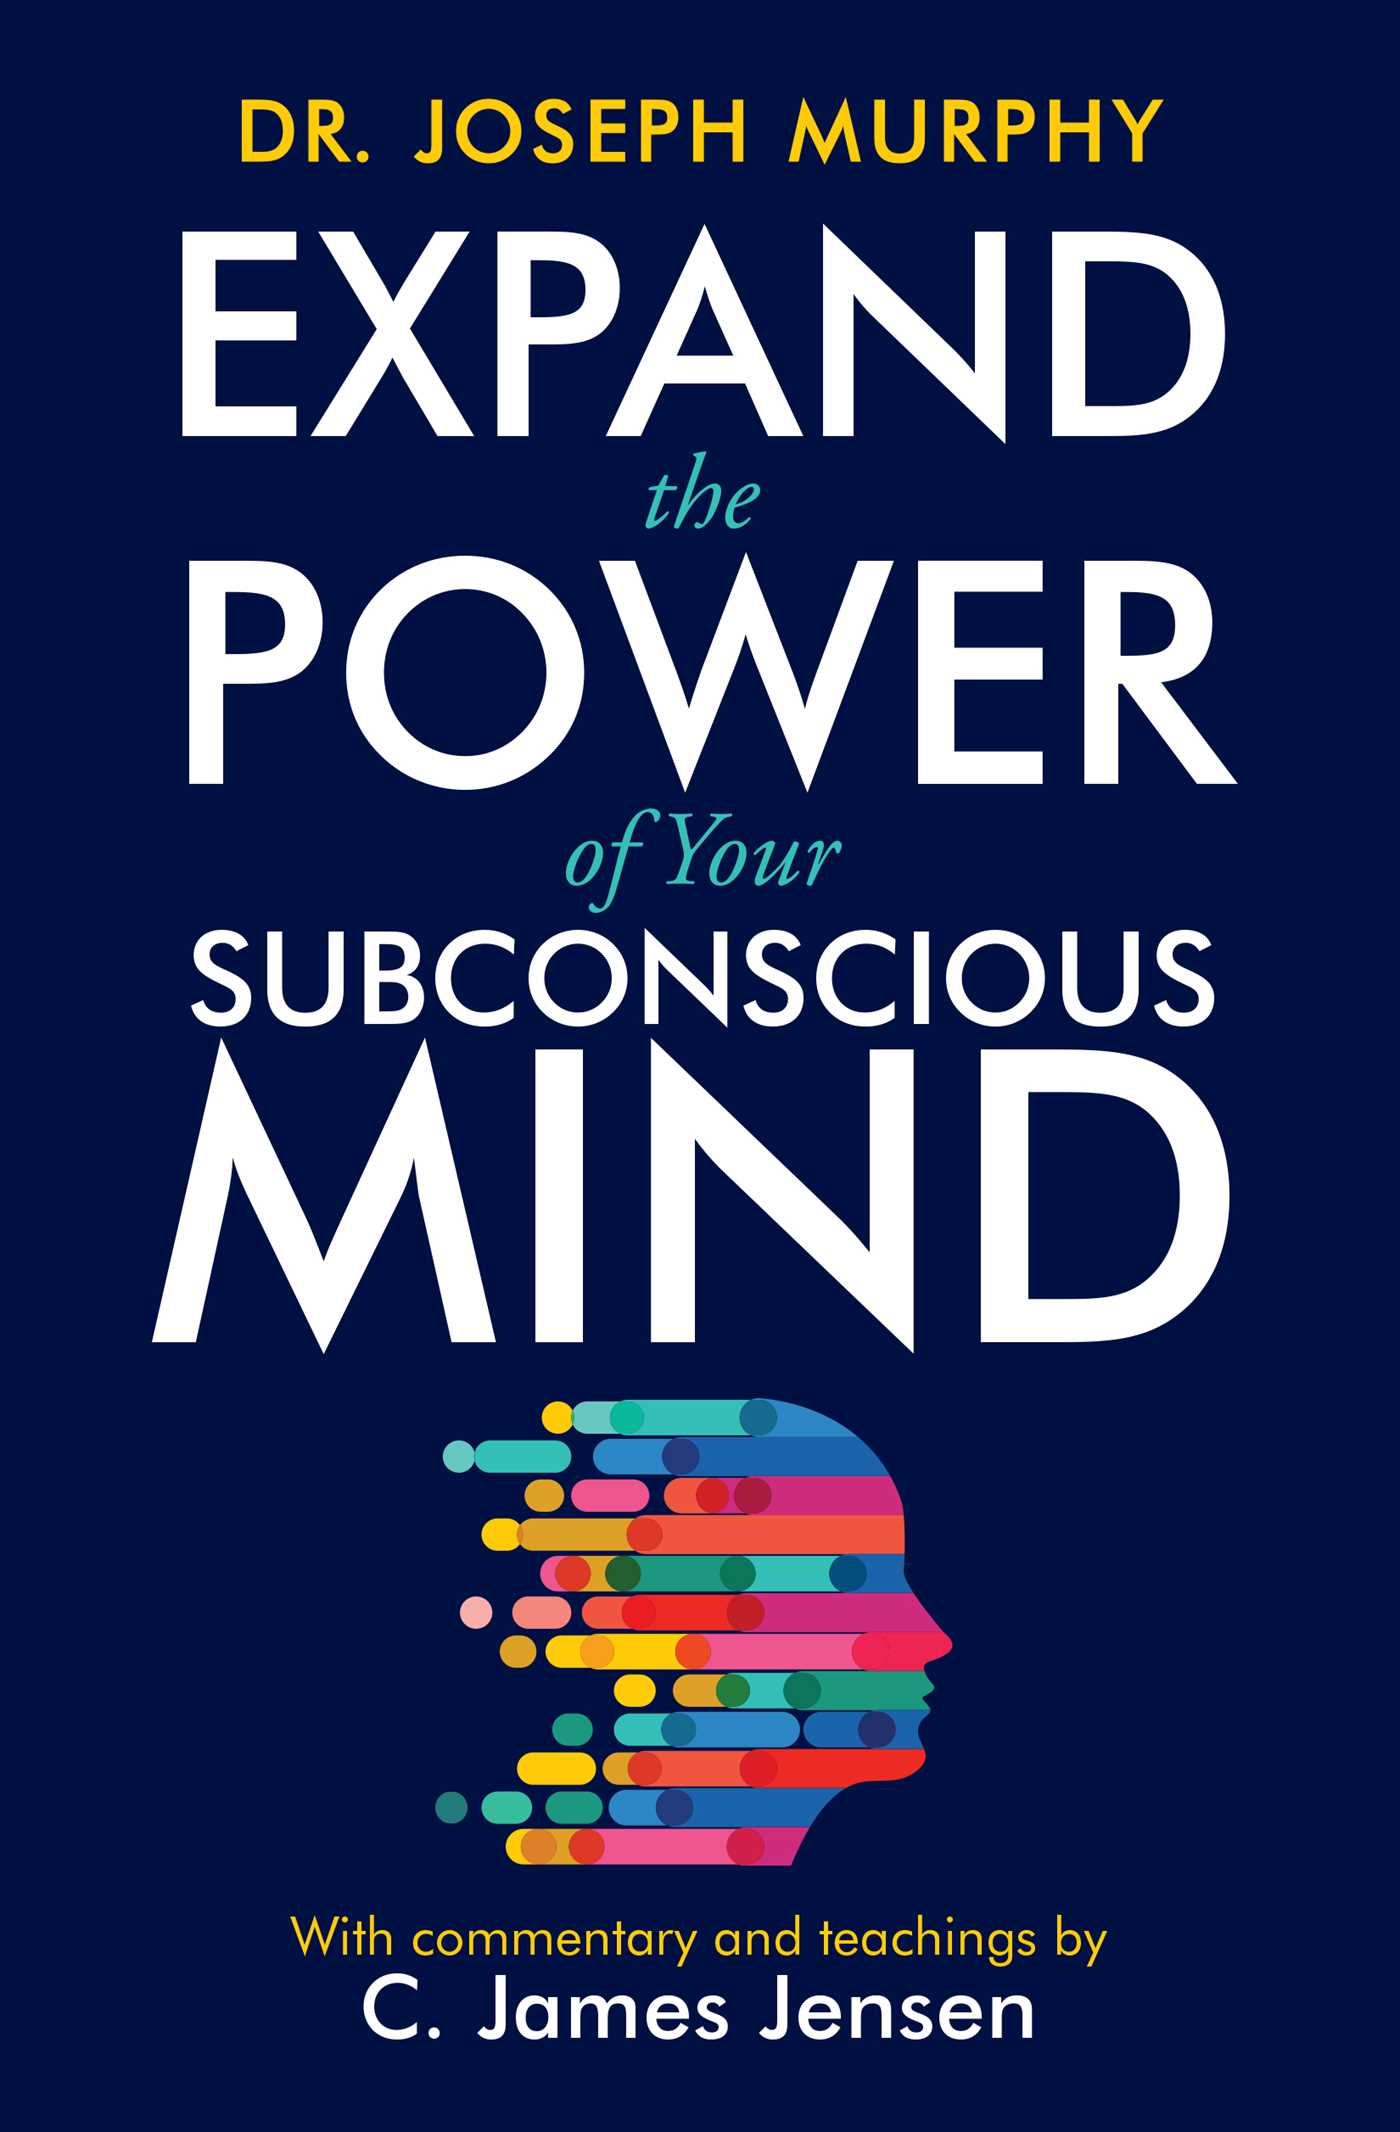 Expand the Power of Your Subconscious Mind by C. James Jensen